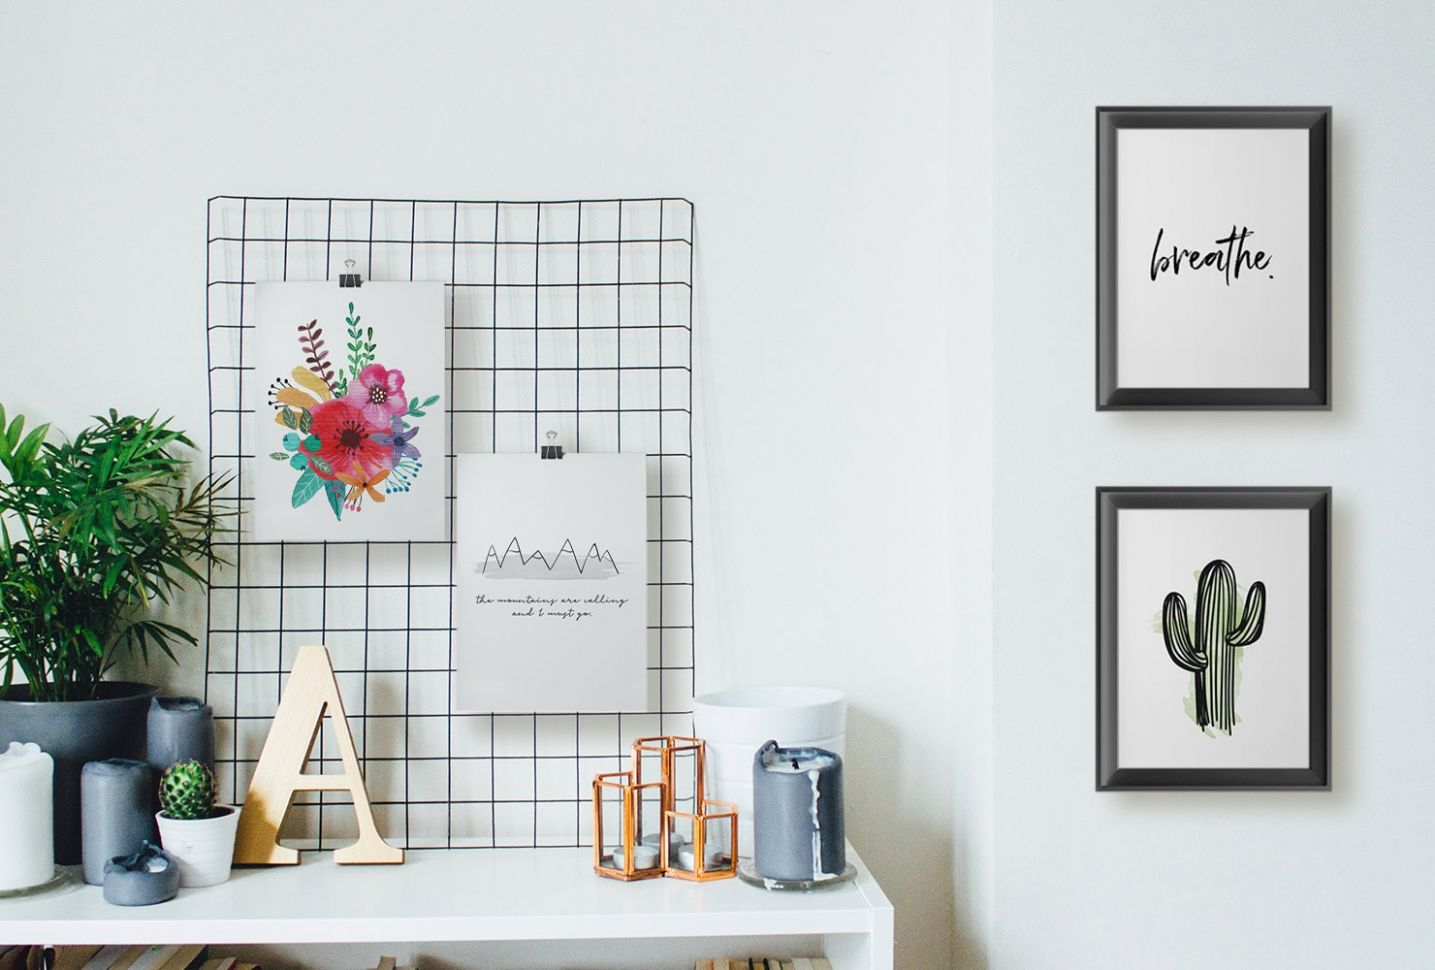 10 Unique DIY Wall Art Ideas (With Printables) | Shutterfly